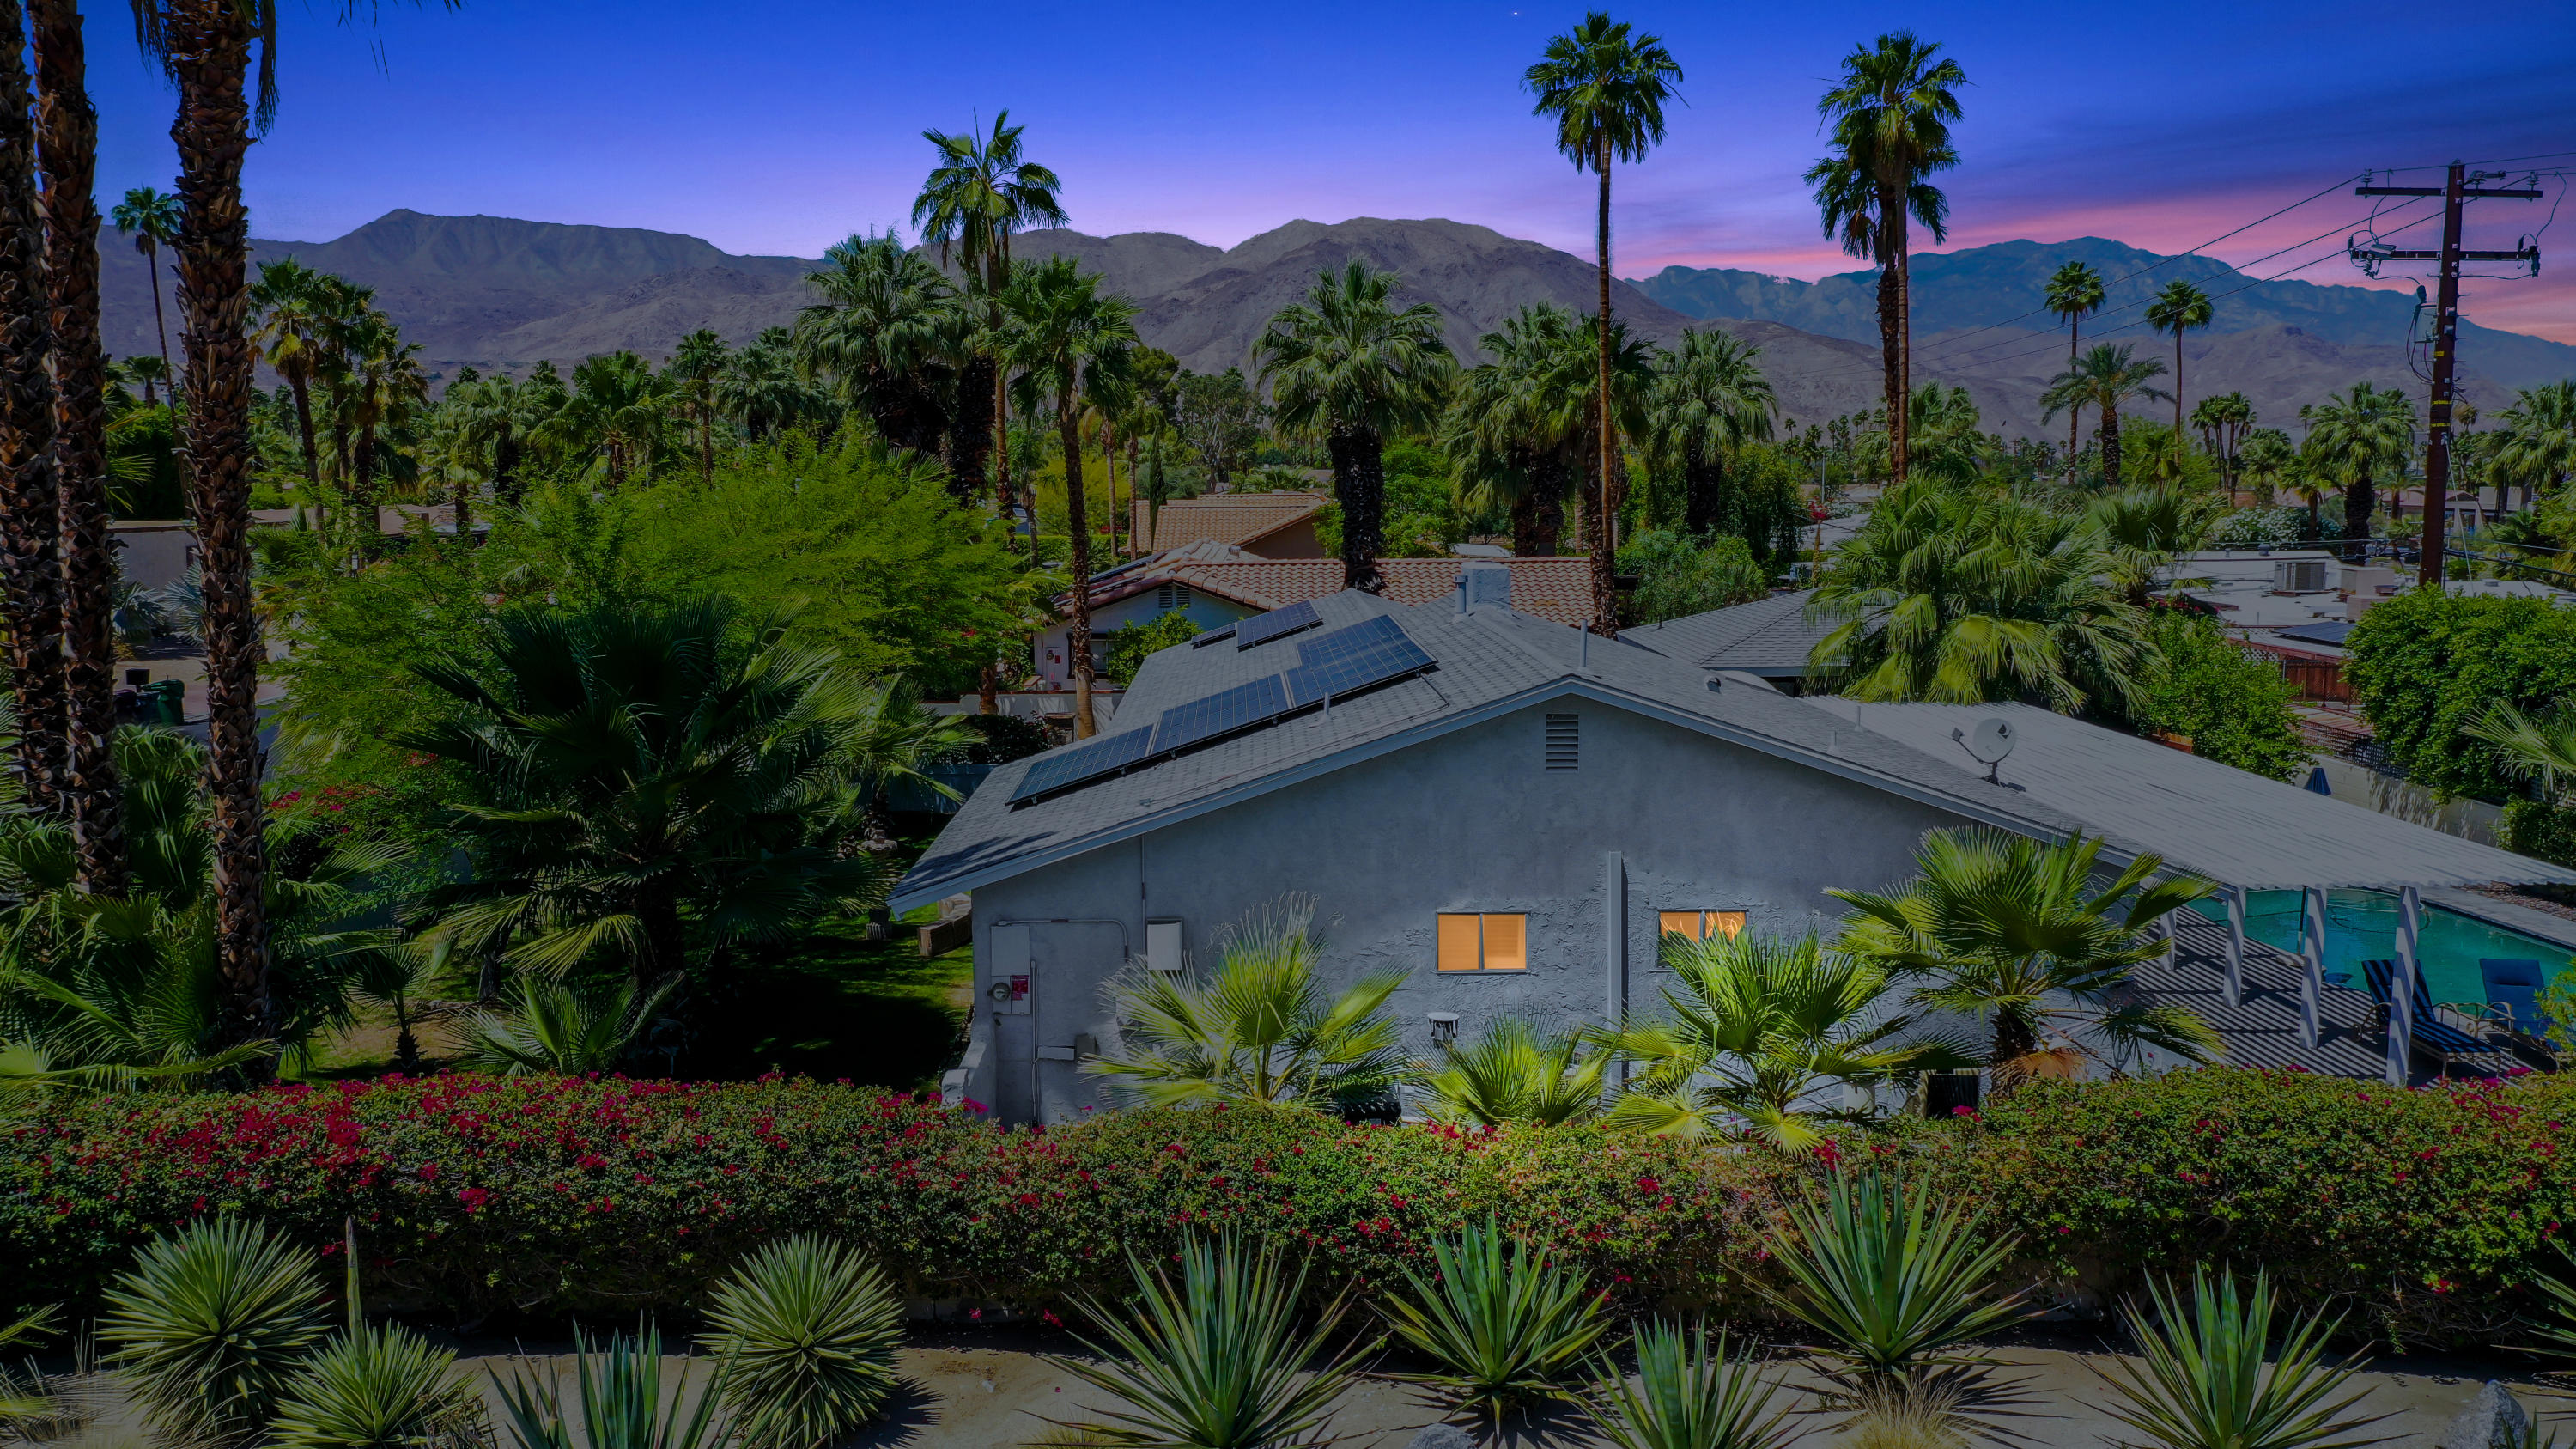 Welcome home to 'Hidden Hacienda', a lovely, remodeled South Palm Desert pool home. Location, Location, Location! Located on the coveted street of Old Prospector Trail, just 5 street blocks from the world famous El Paseo, ''The Rodeo Drive Of The Desert''. This 1962 sq ft home, plus the 483sq ft detached casita, on a 11.059 sq ft corner lot, offers a serene, very private oasis behind walls lined with lush greenery, colorful flowers and towering palm trees. 3 bedrooms + 2 bathrooms in the main house and 1 bedroom, 1 bath in the casita. Relax by the sparkling pool and spa, surrounded by interlocking brick pavers, under the swaying palm trees while you enjoy the views of the Santa Rosa Mountains. The  charming casita offers the versatility of hosting friends and family and/or for use with short term or long term vacation rentals if you like. Attached 2 car garage. Interlocking brick pavers adorn the driveway. No HOA, no HOA dues. Schedule your appointment to see this delightful resort-like property today!